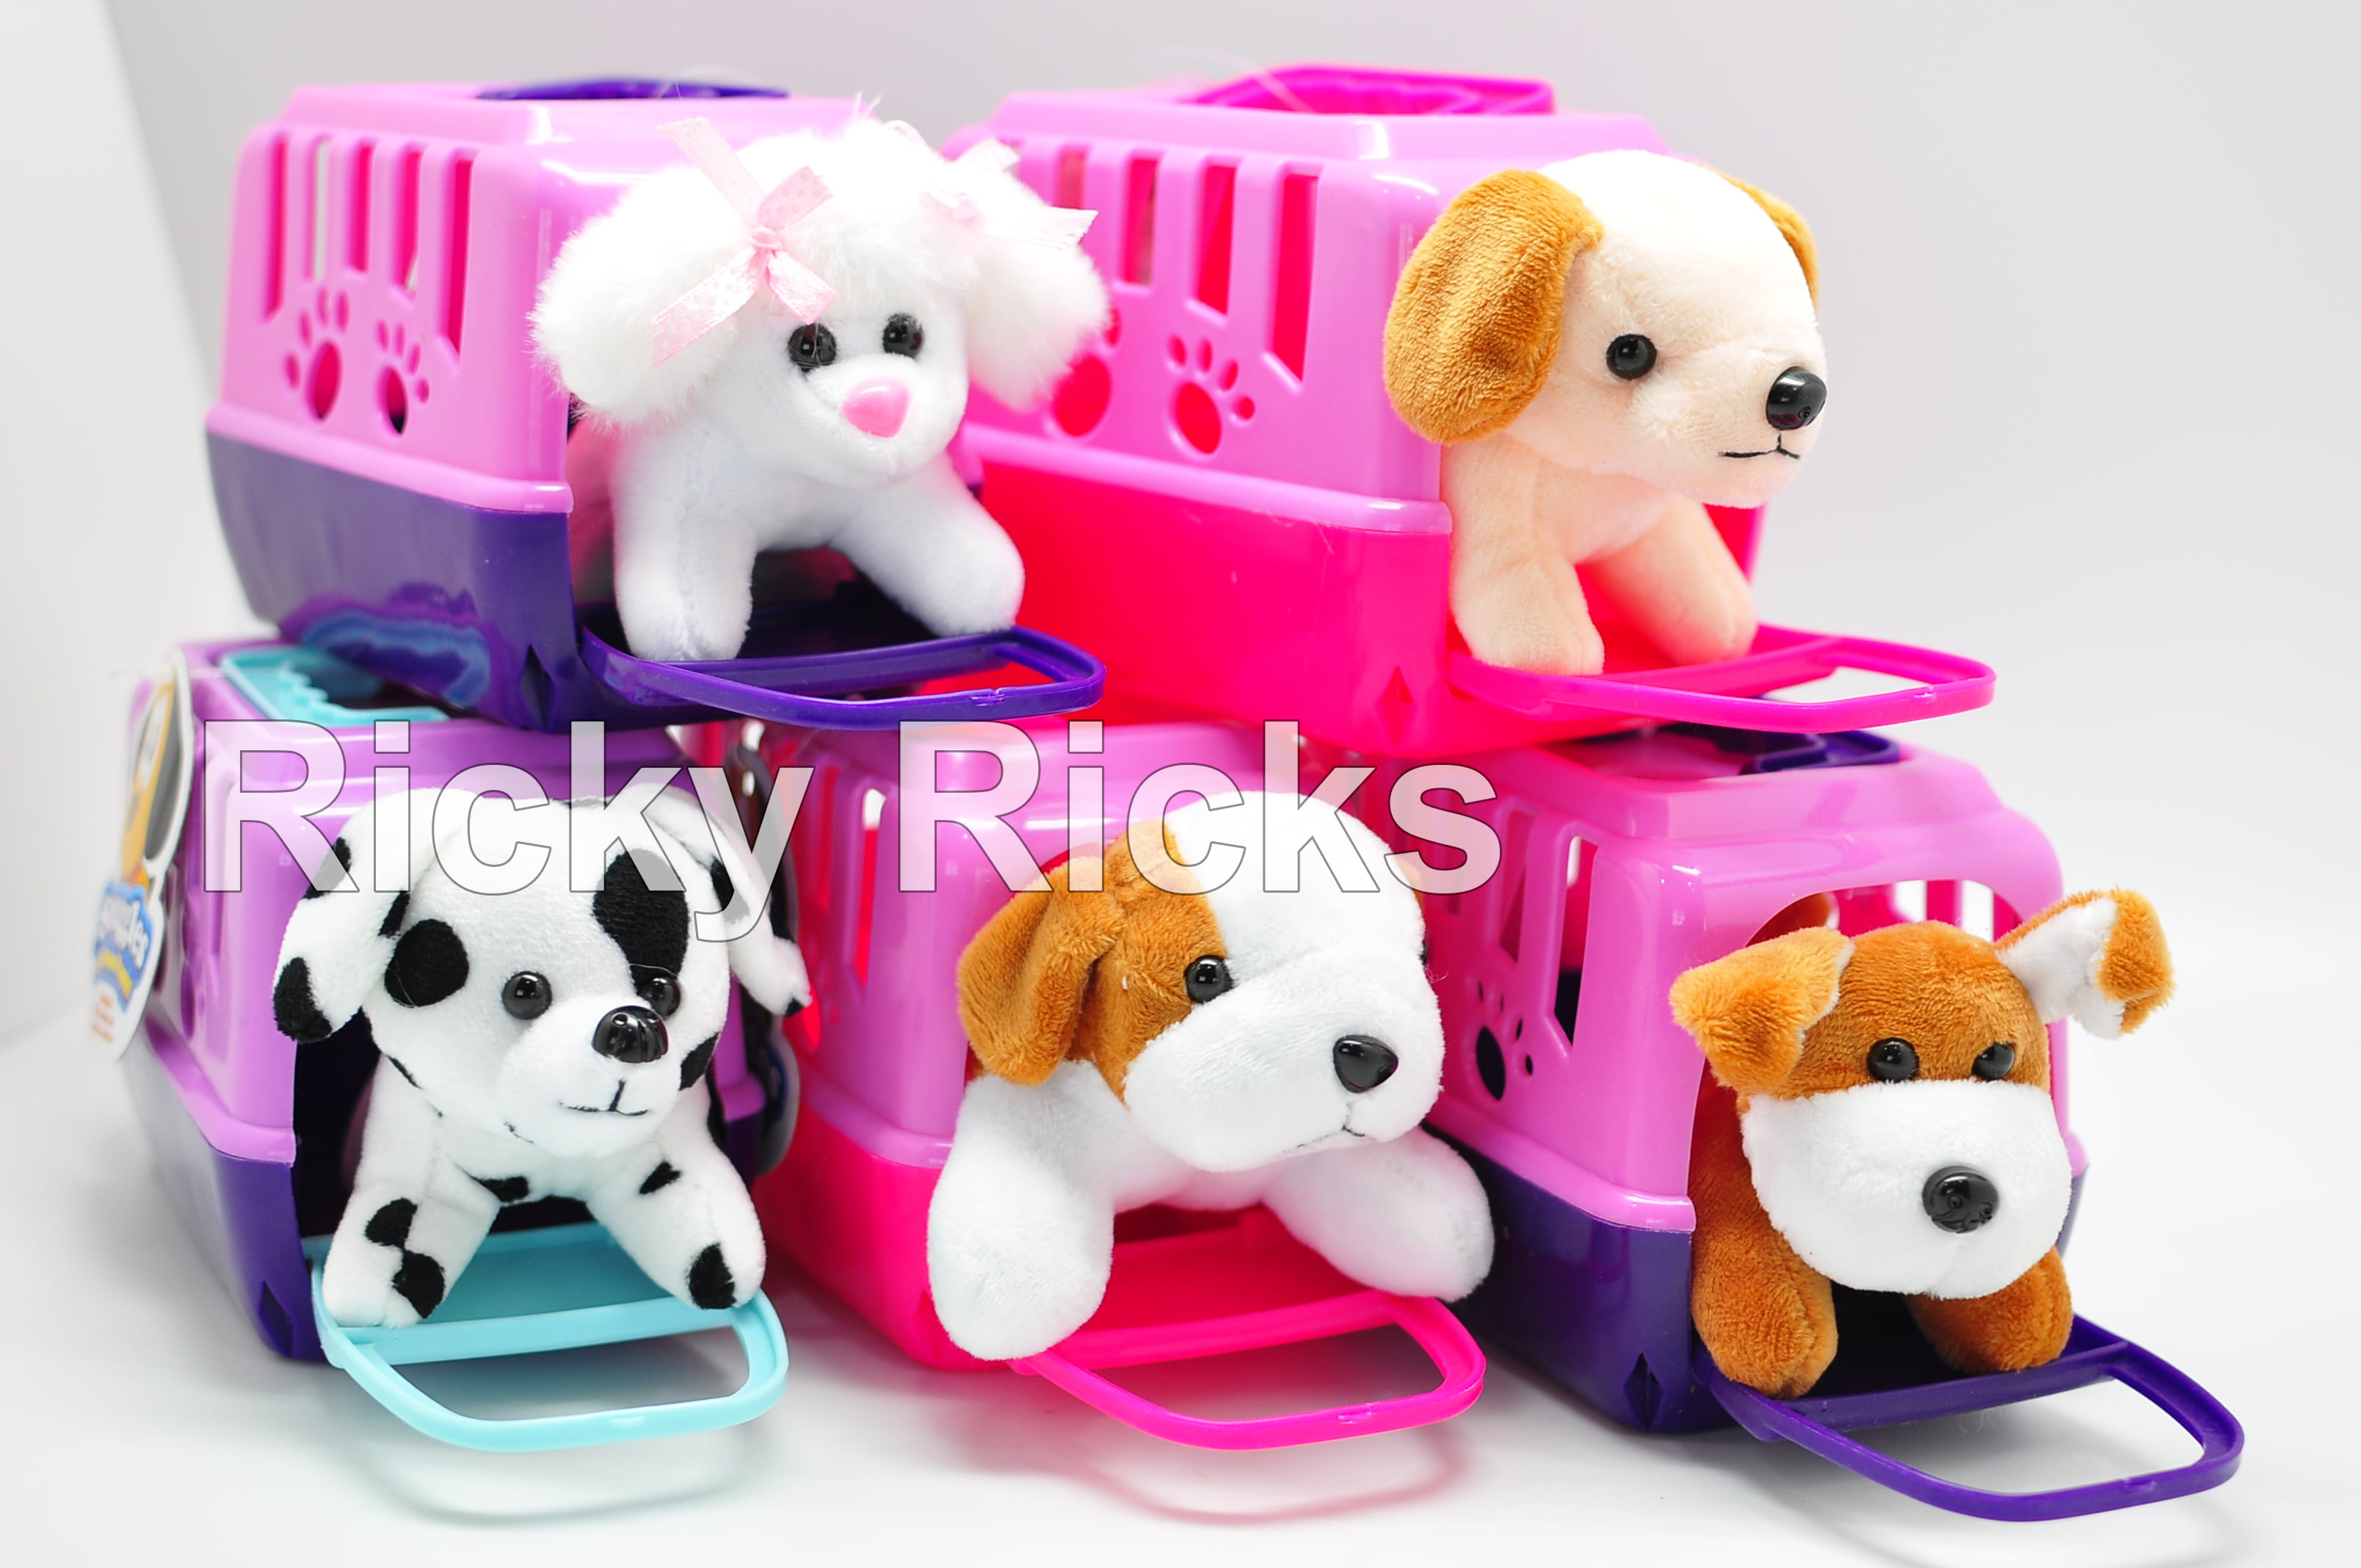 Small Pet Shop Toy Dog Carrying Case Kids Cute Puppy Stuffed